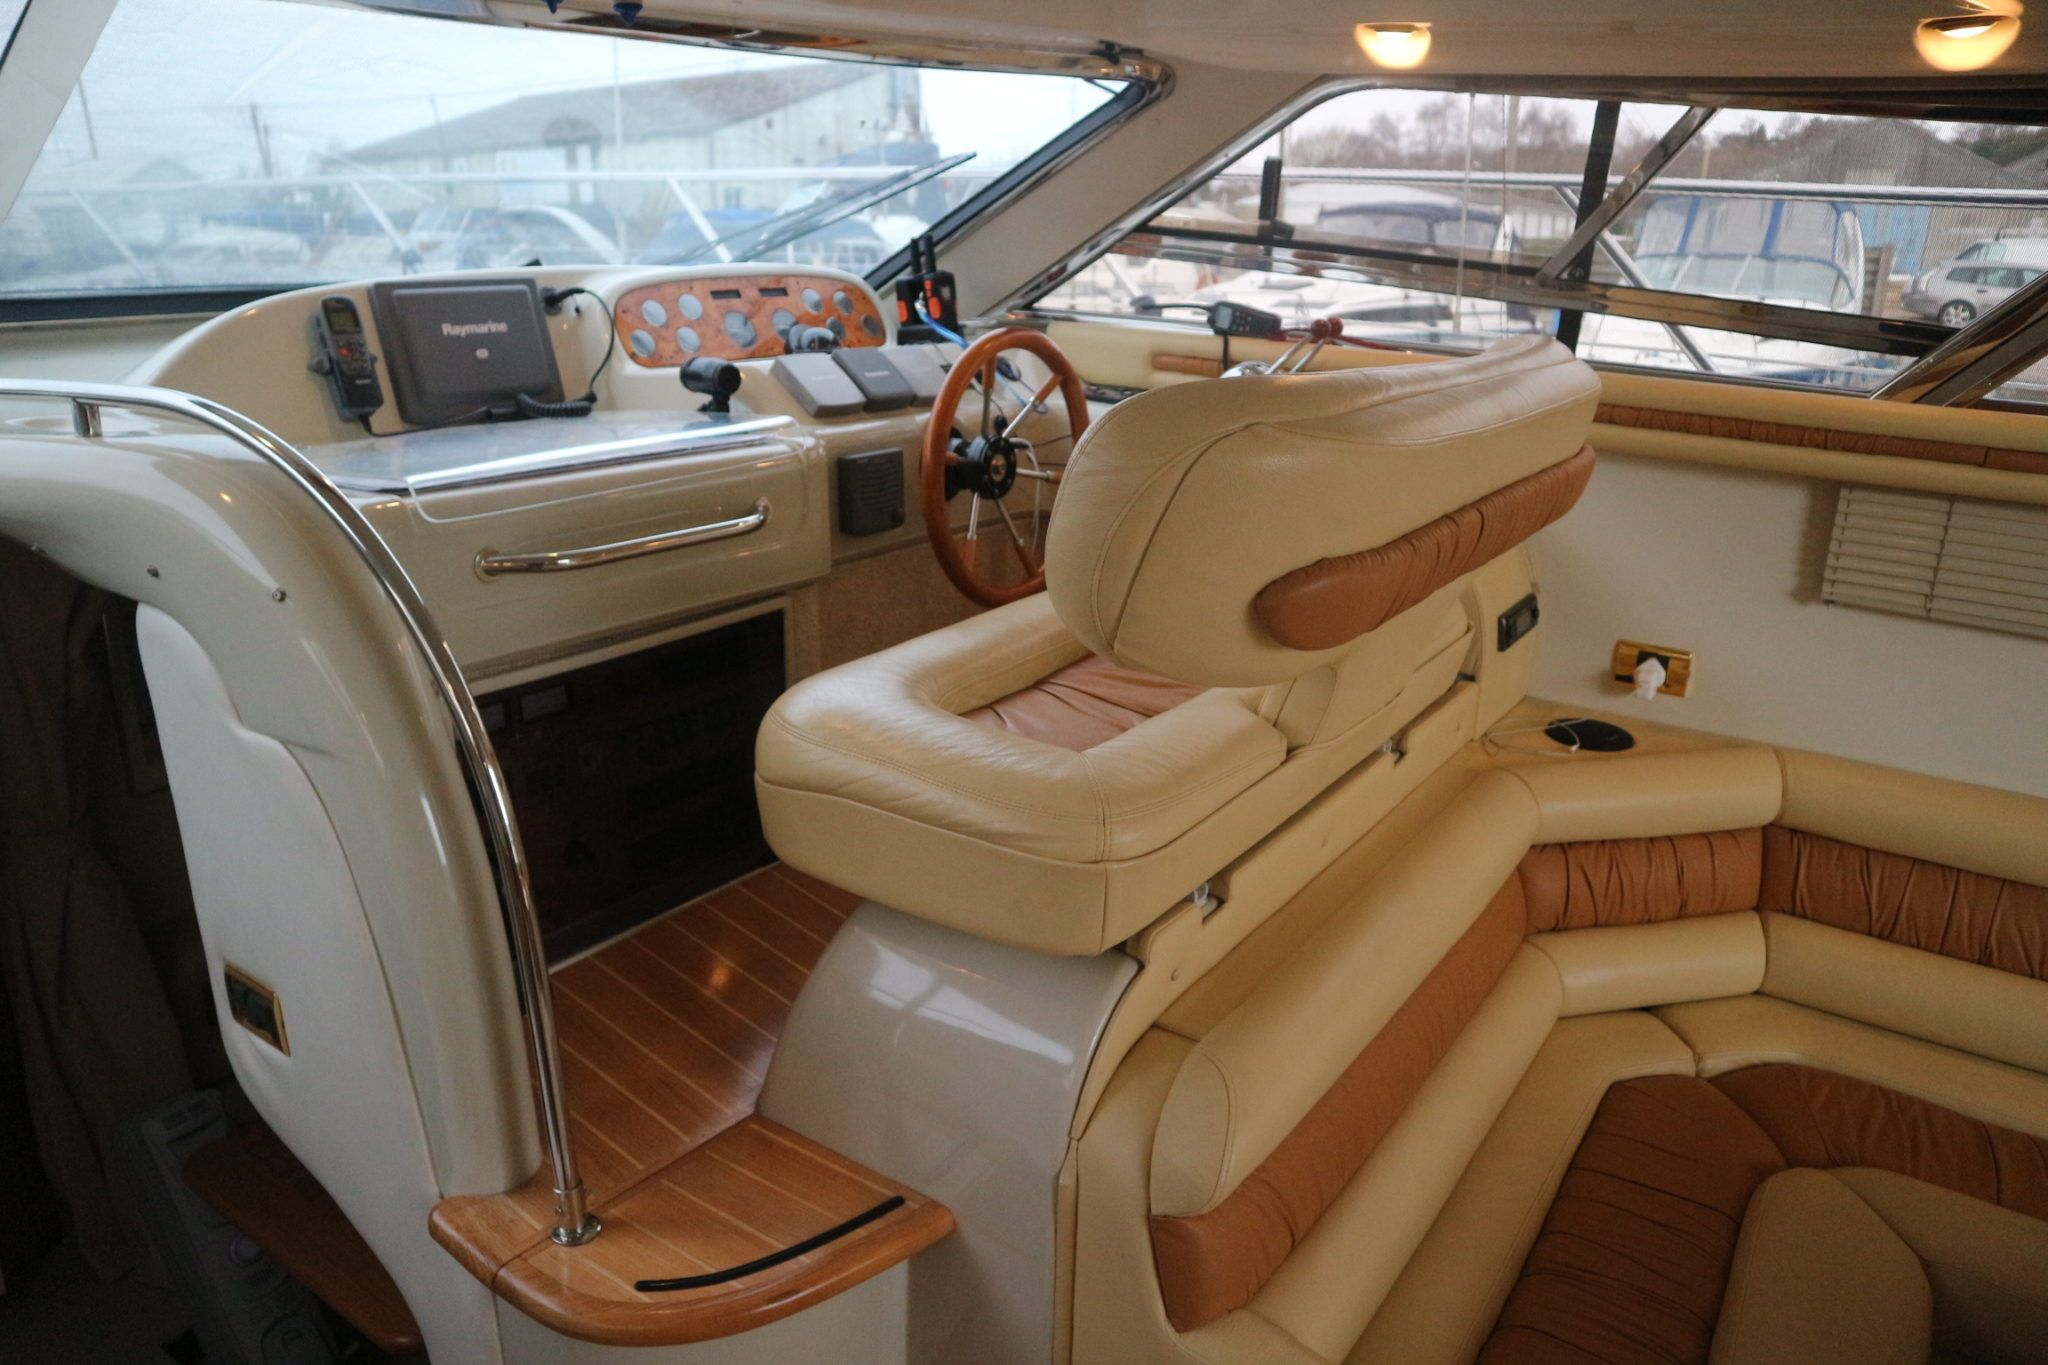 Interior helm to starboard